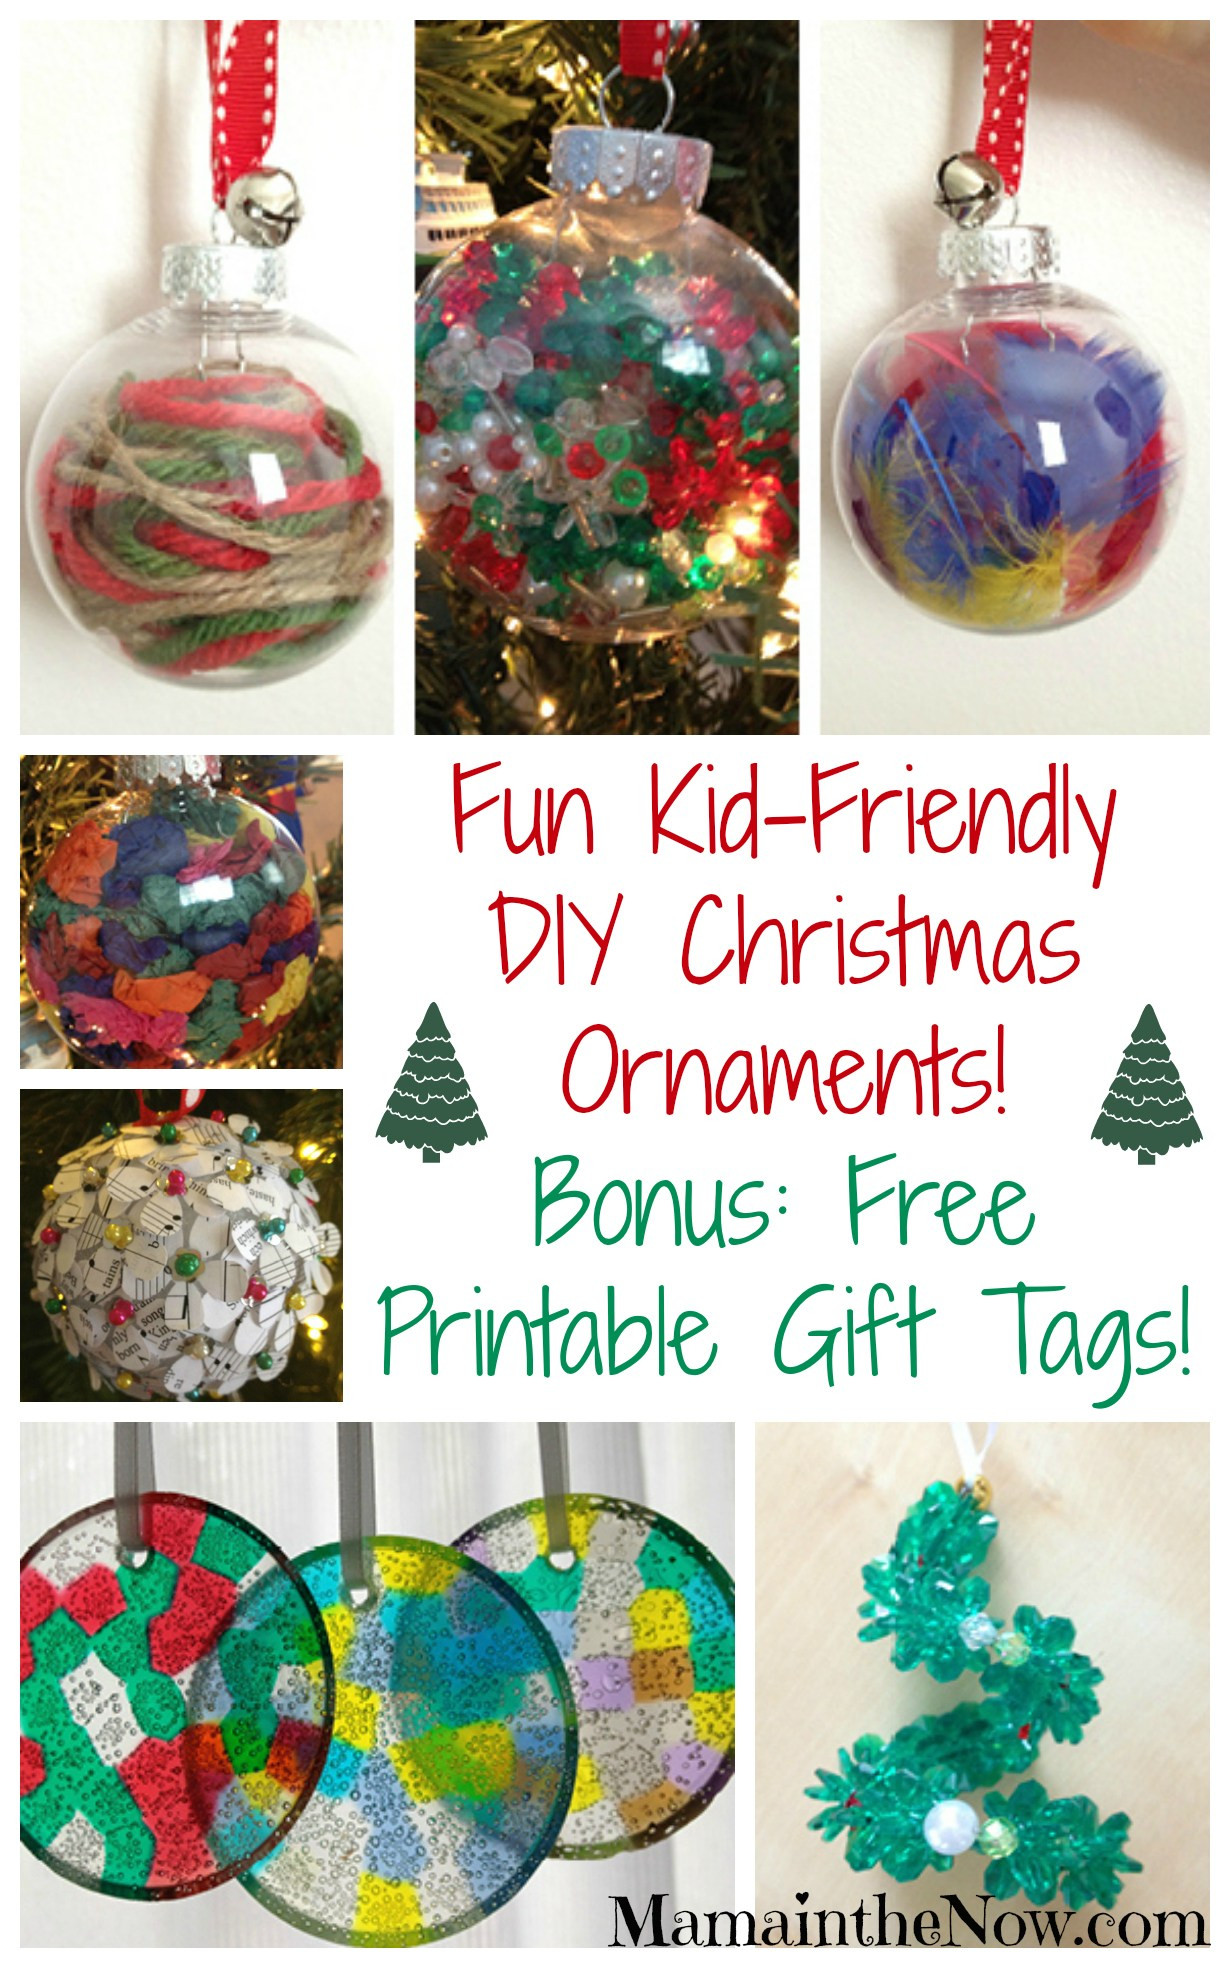 Best ideas about DIY Kids Ornaments . Save or Pin Easy Kid Friendly DIY Christmas Ornaments Now.